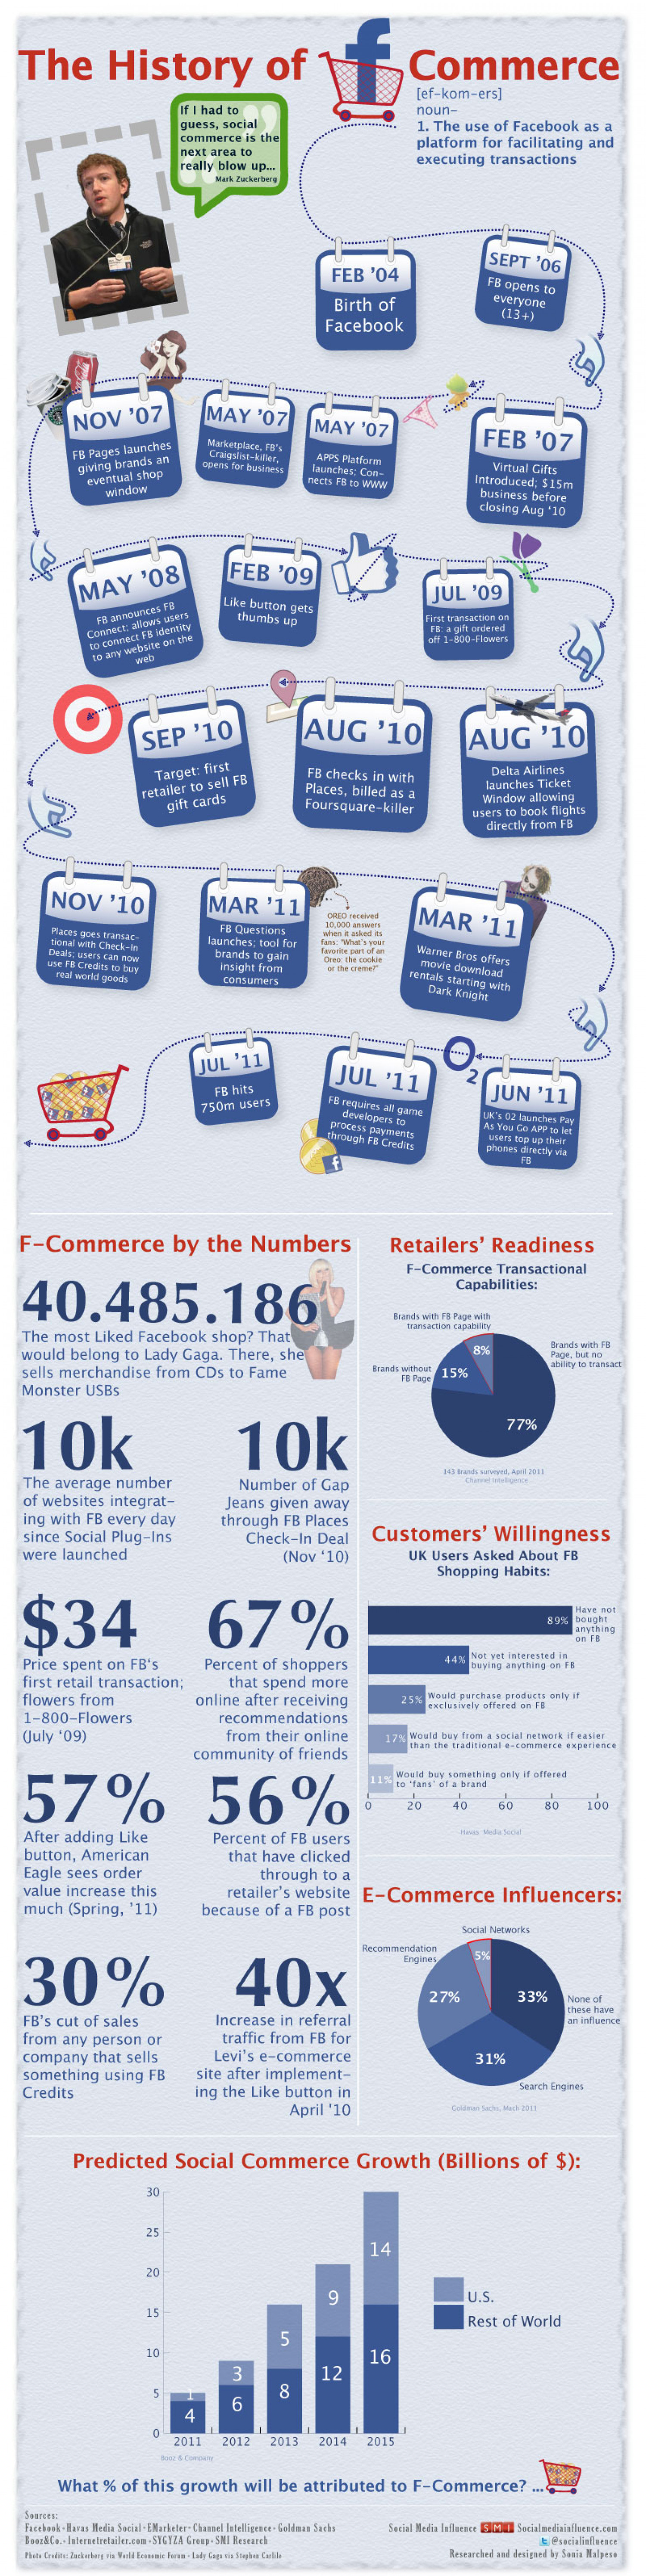 The history of F-commerce Infographic